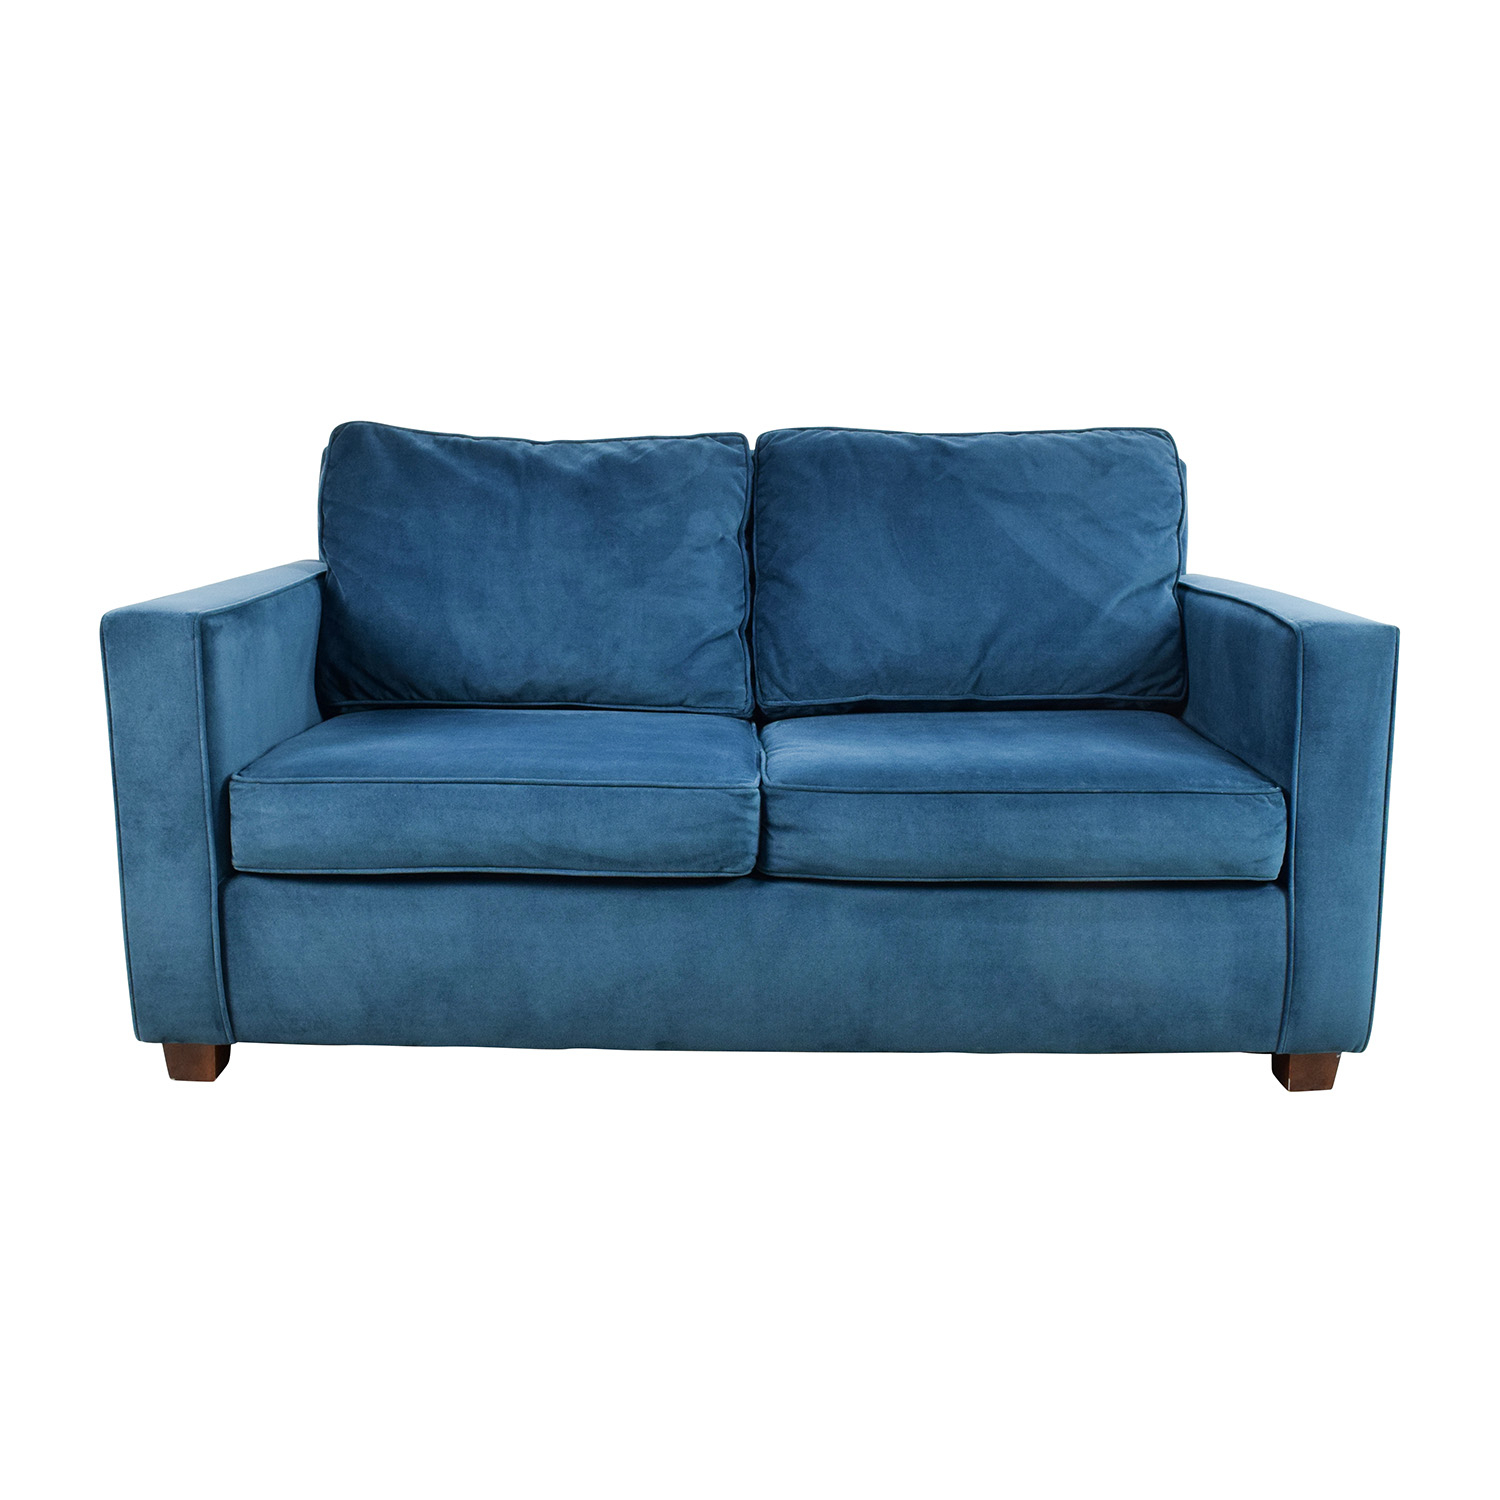 39% Off – West Elm West Elm Celestial Blue Henry Loveseat / Sofas Inside Elm Sofa Chairs (Image 2 of 25)